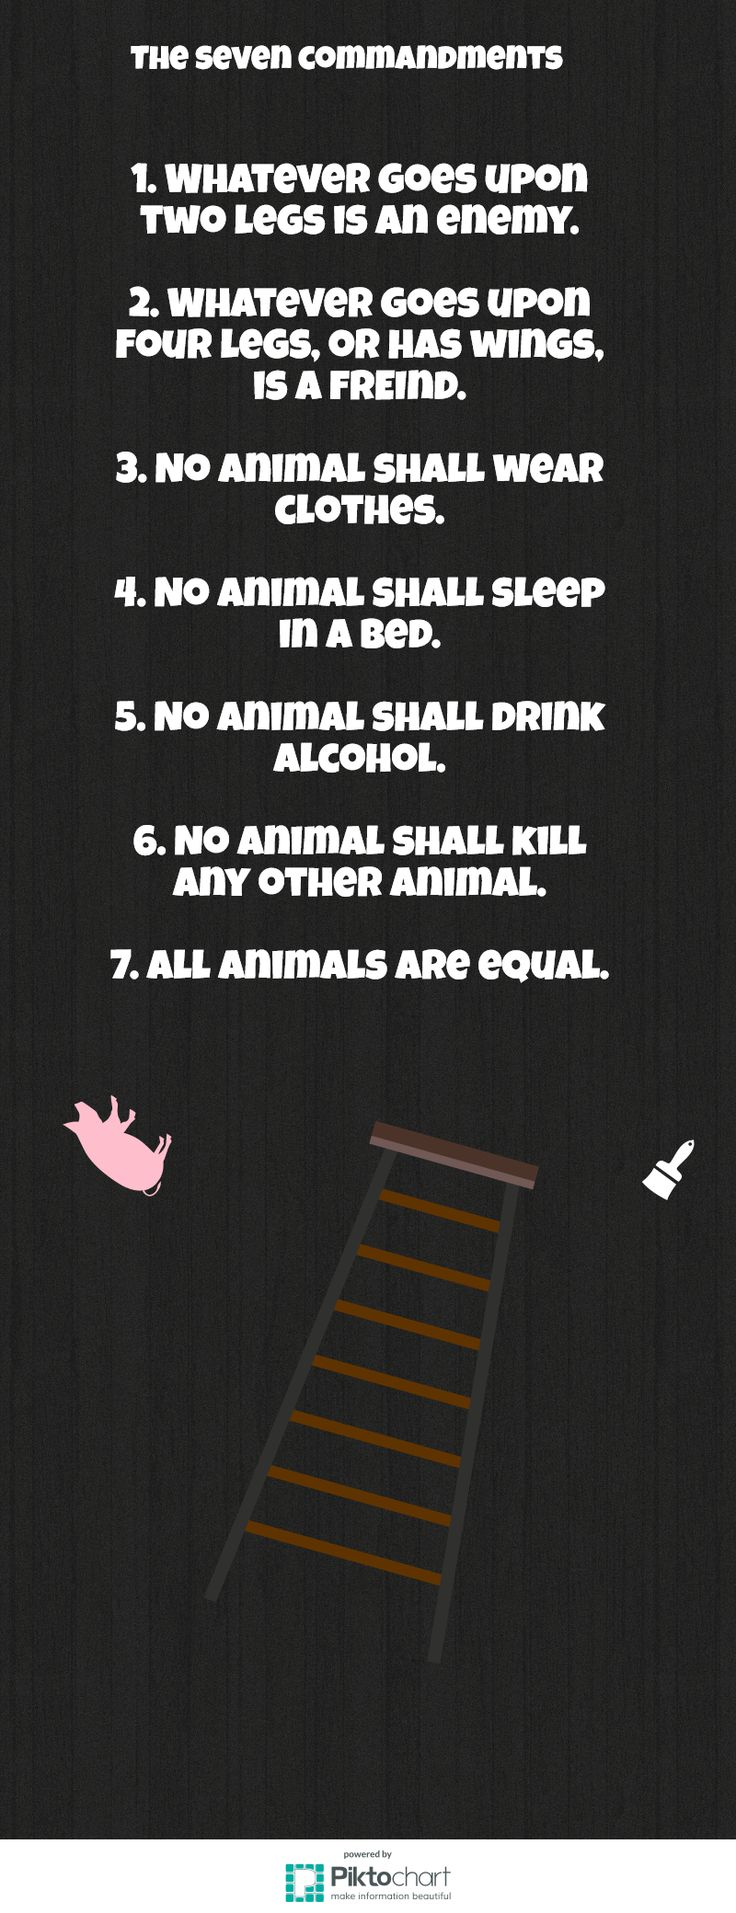 The 7 commandments written by Snowball on the wall of the barn